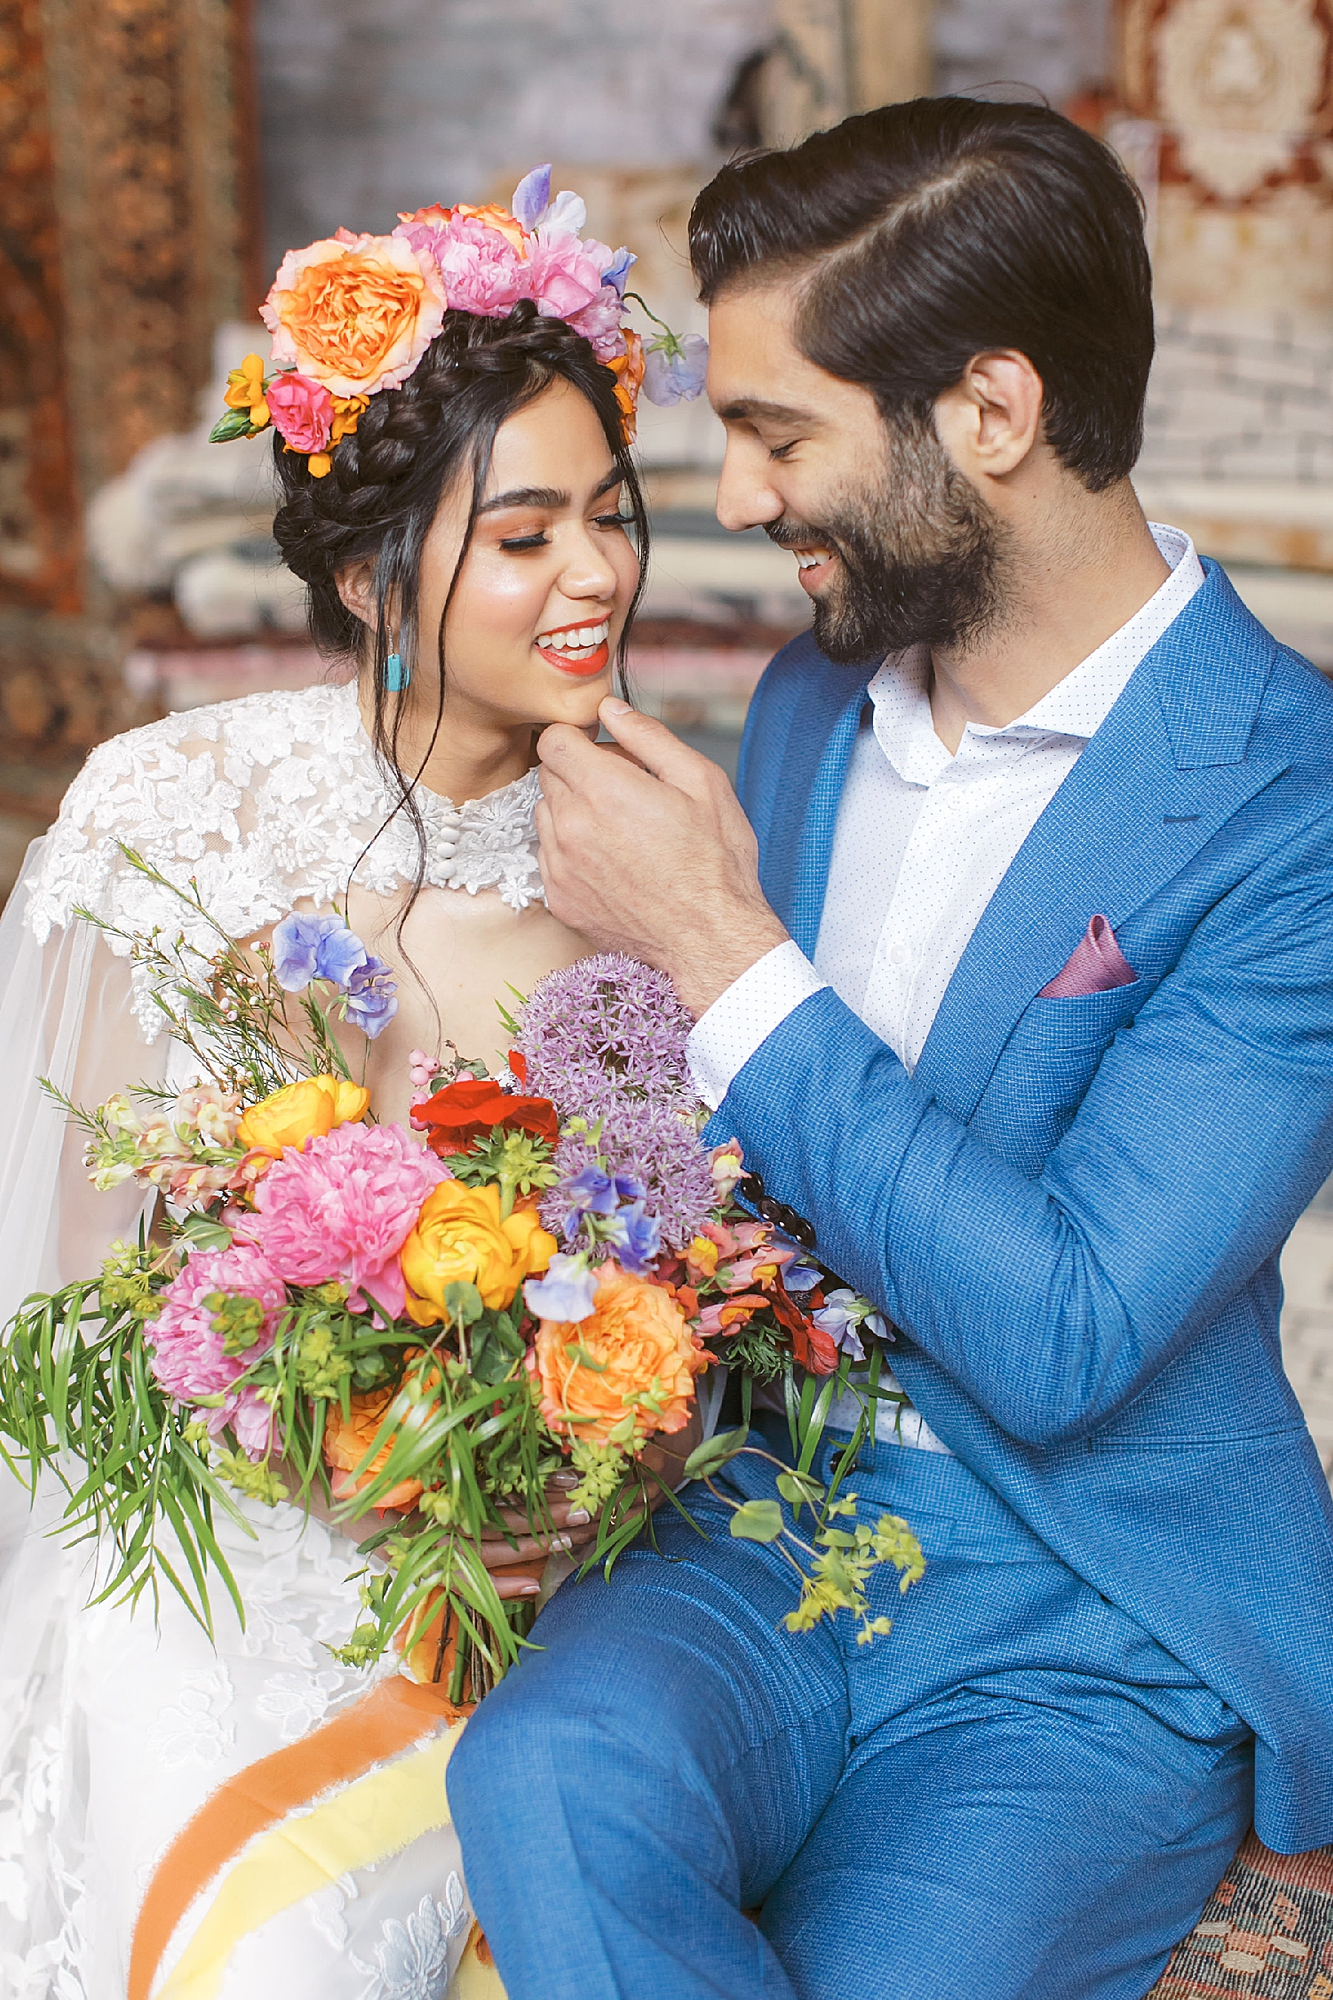 Vibrant and Colorful Frida Kahlo Inspired Wedding Photography by Magdalena Studios 0021